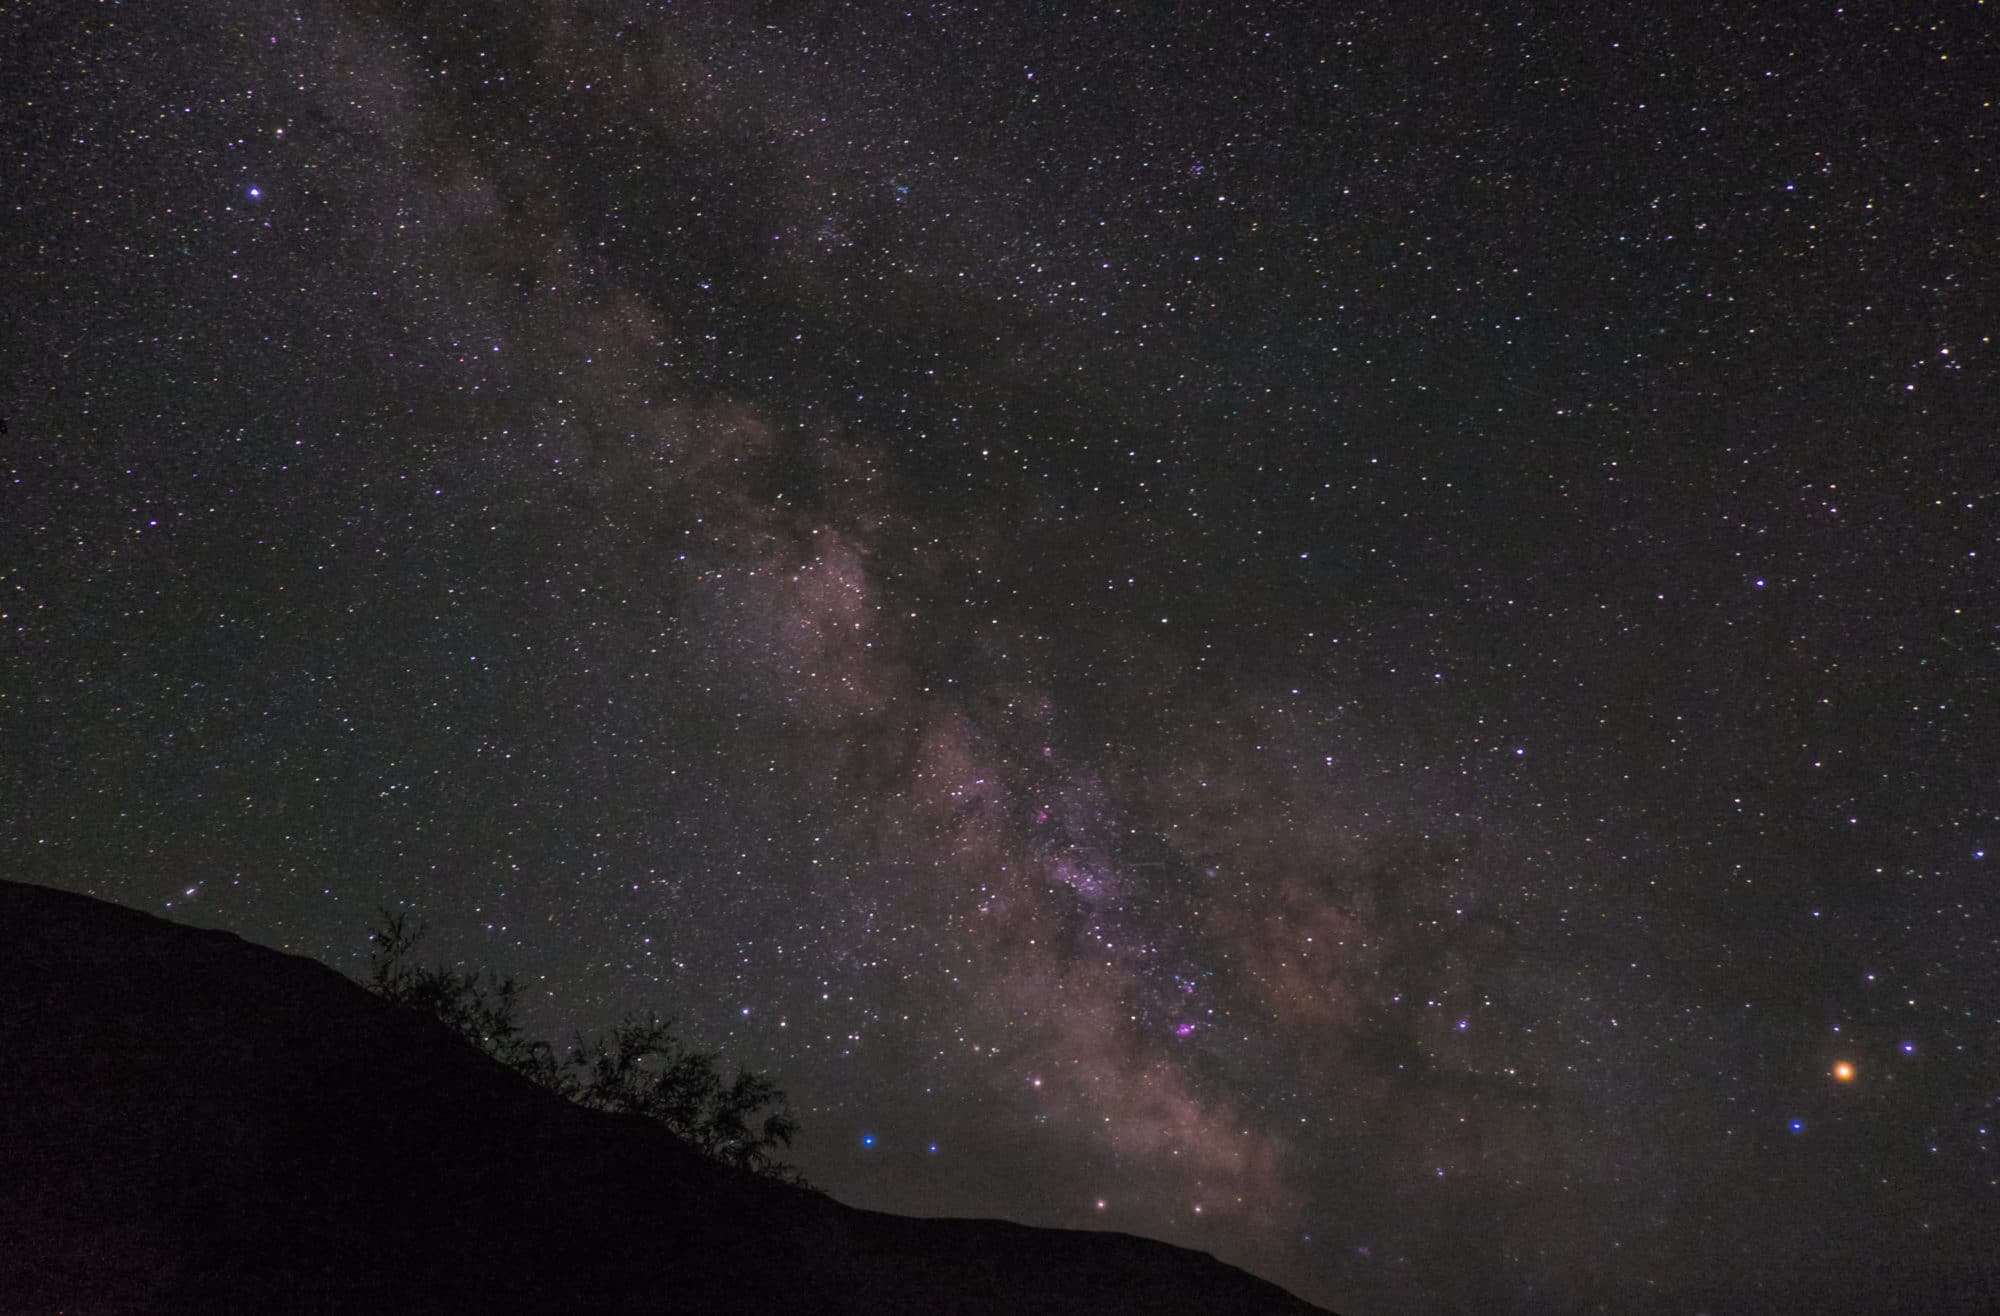 A spectacular new view of the center of the Milky Way